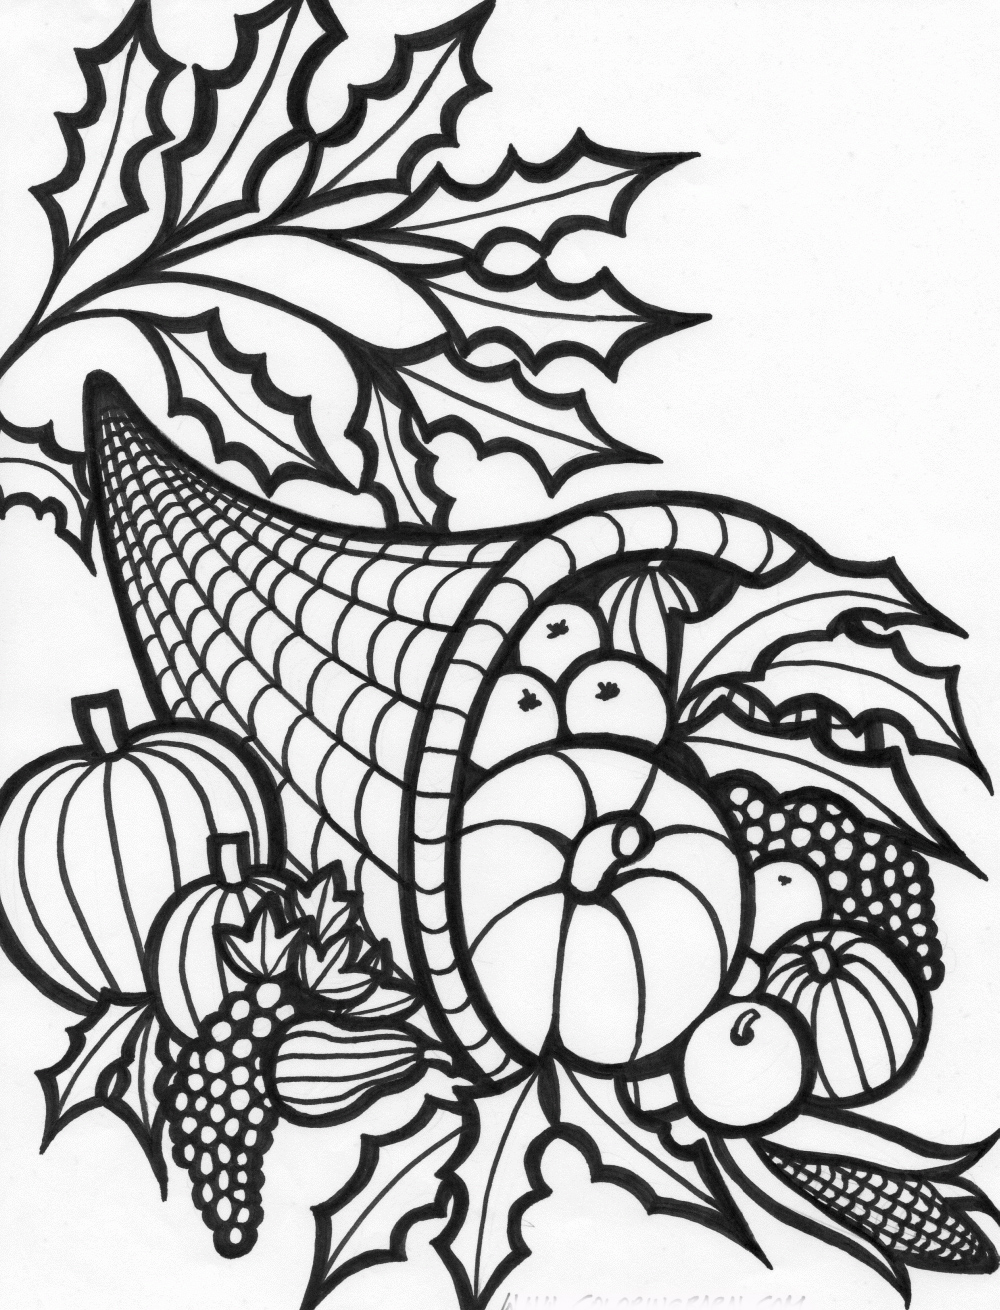 It's just a photo of Versatile adult coloring pages thanksgiving